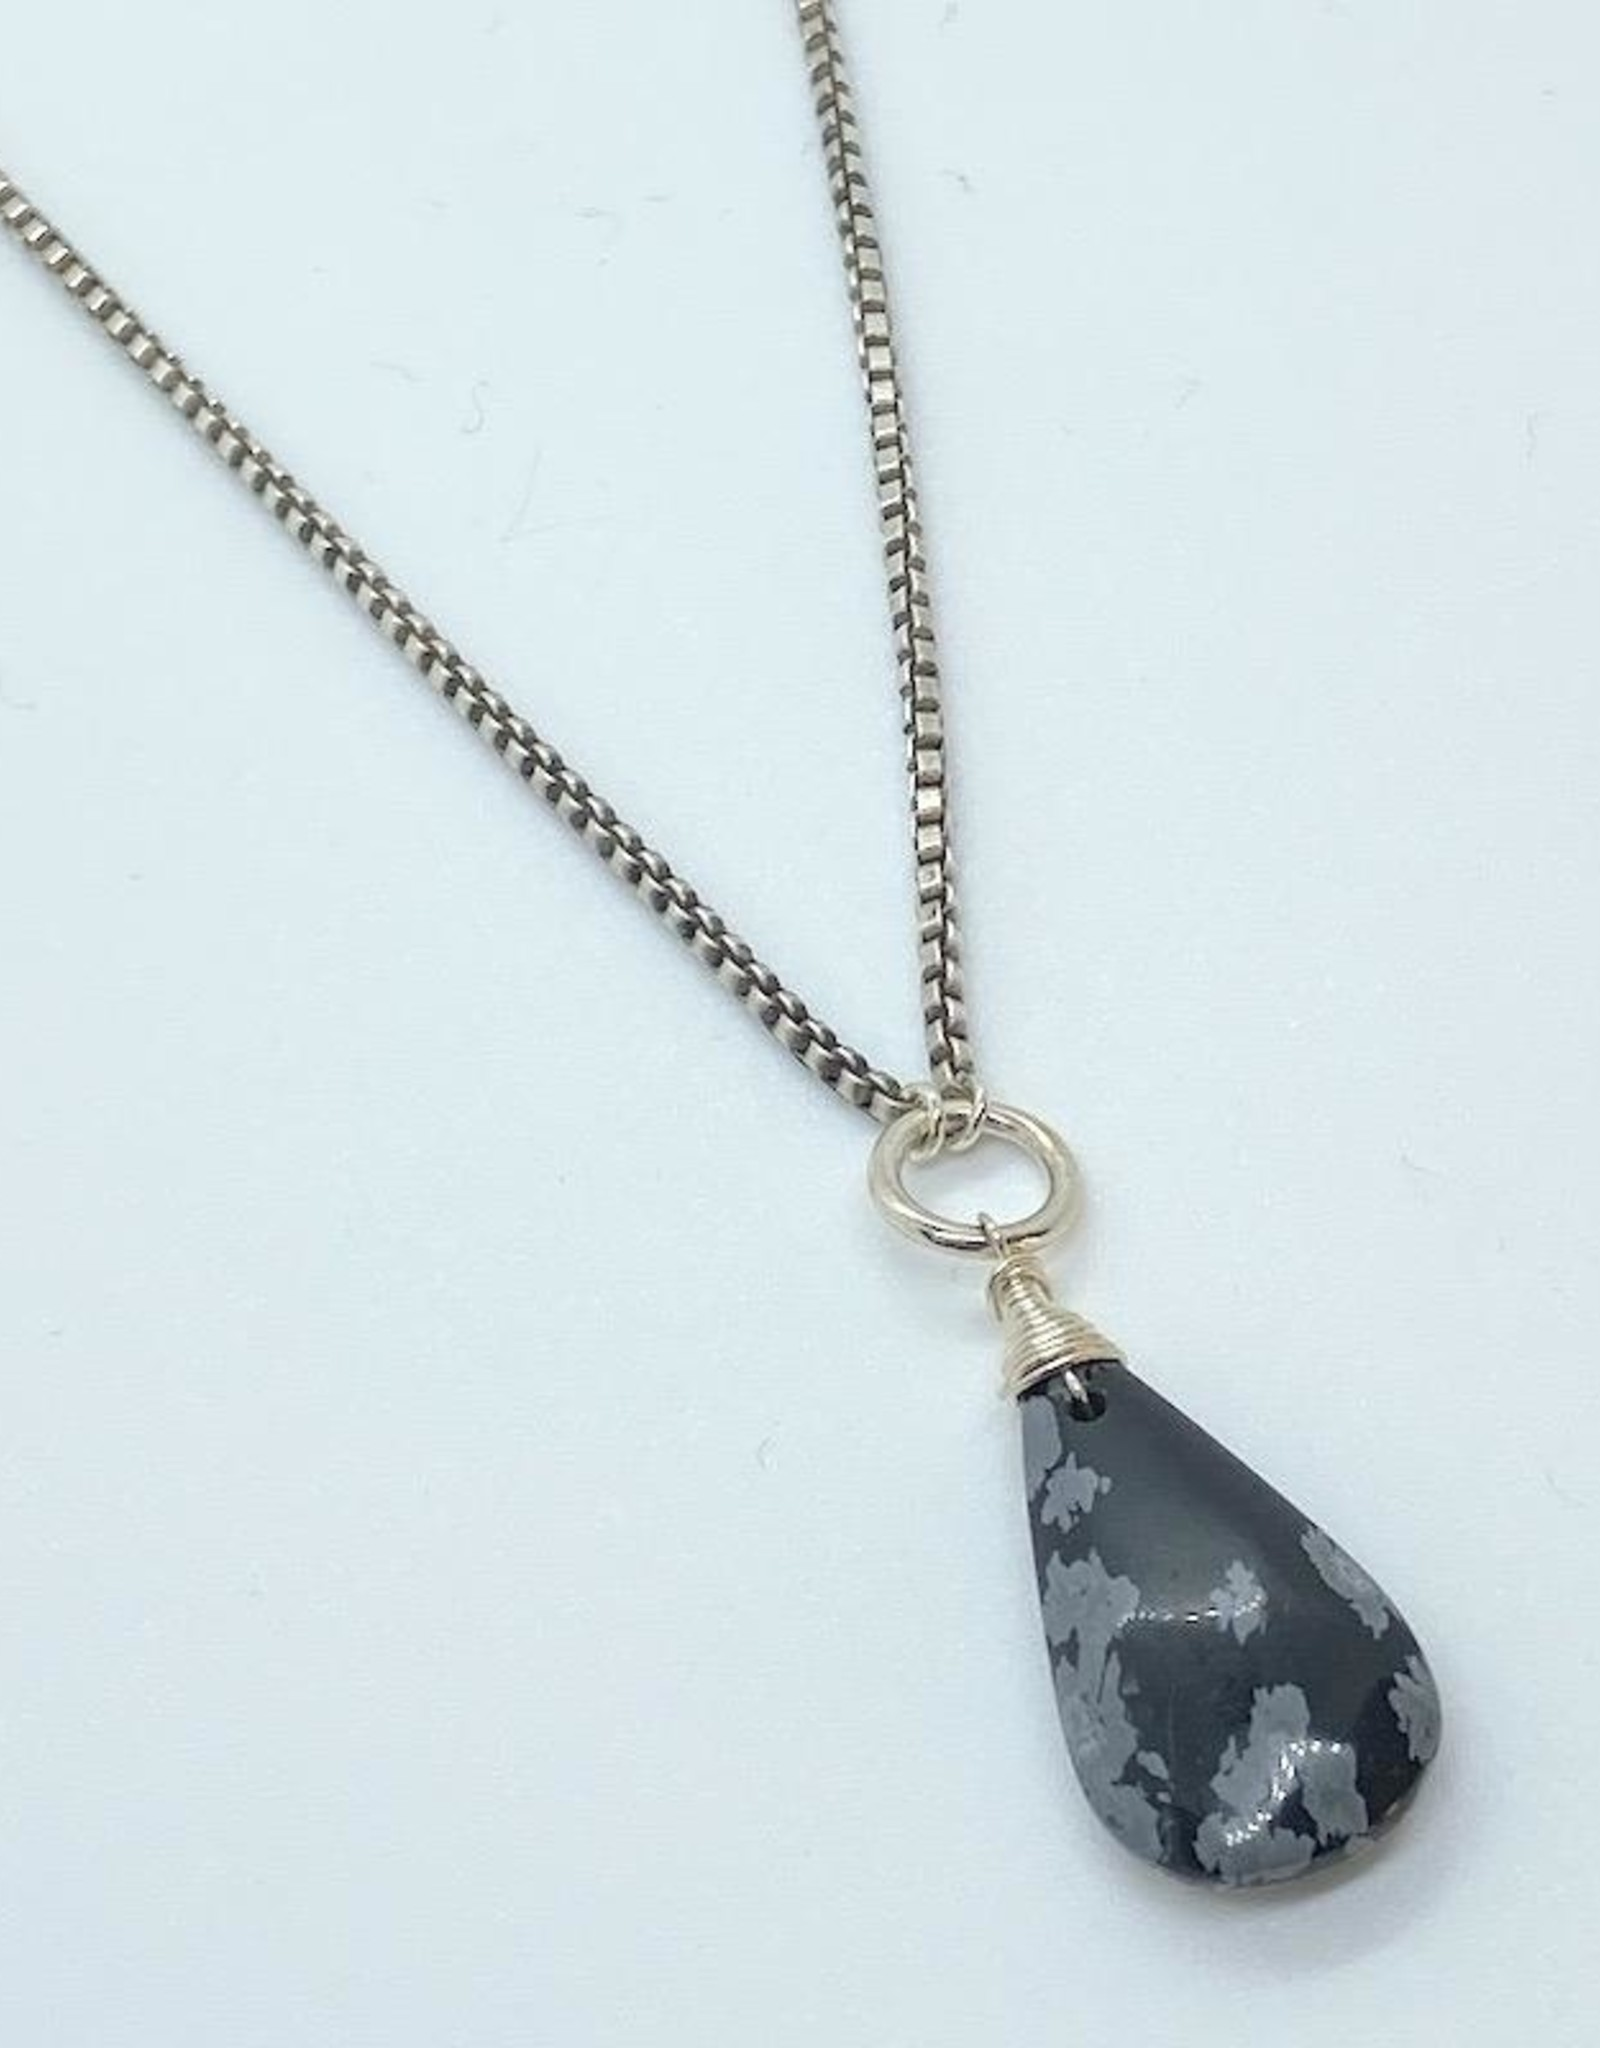 Handmade Sterling Silver Necklace with snowflake obsidian briolette, box chain